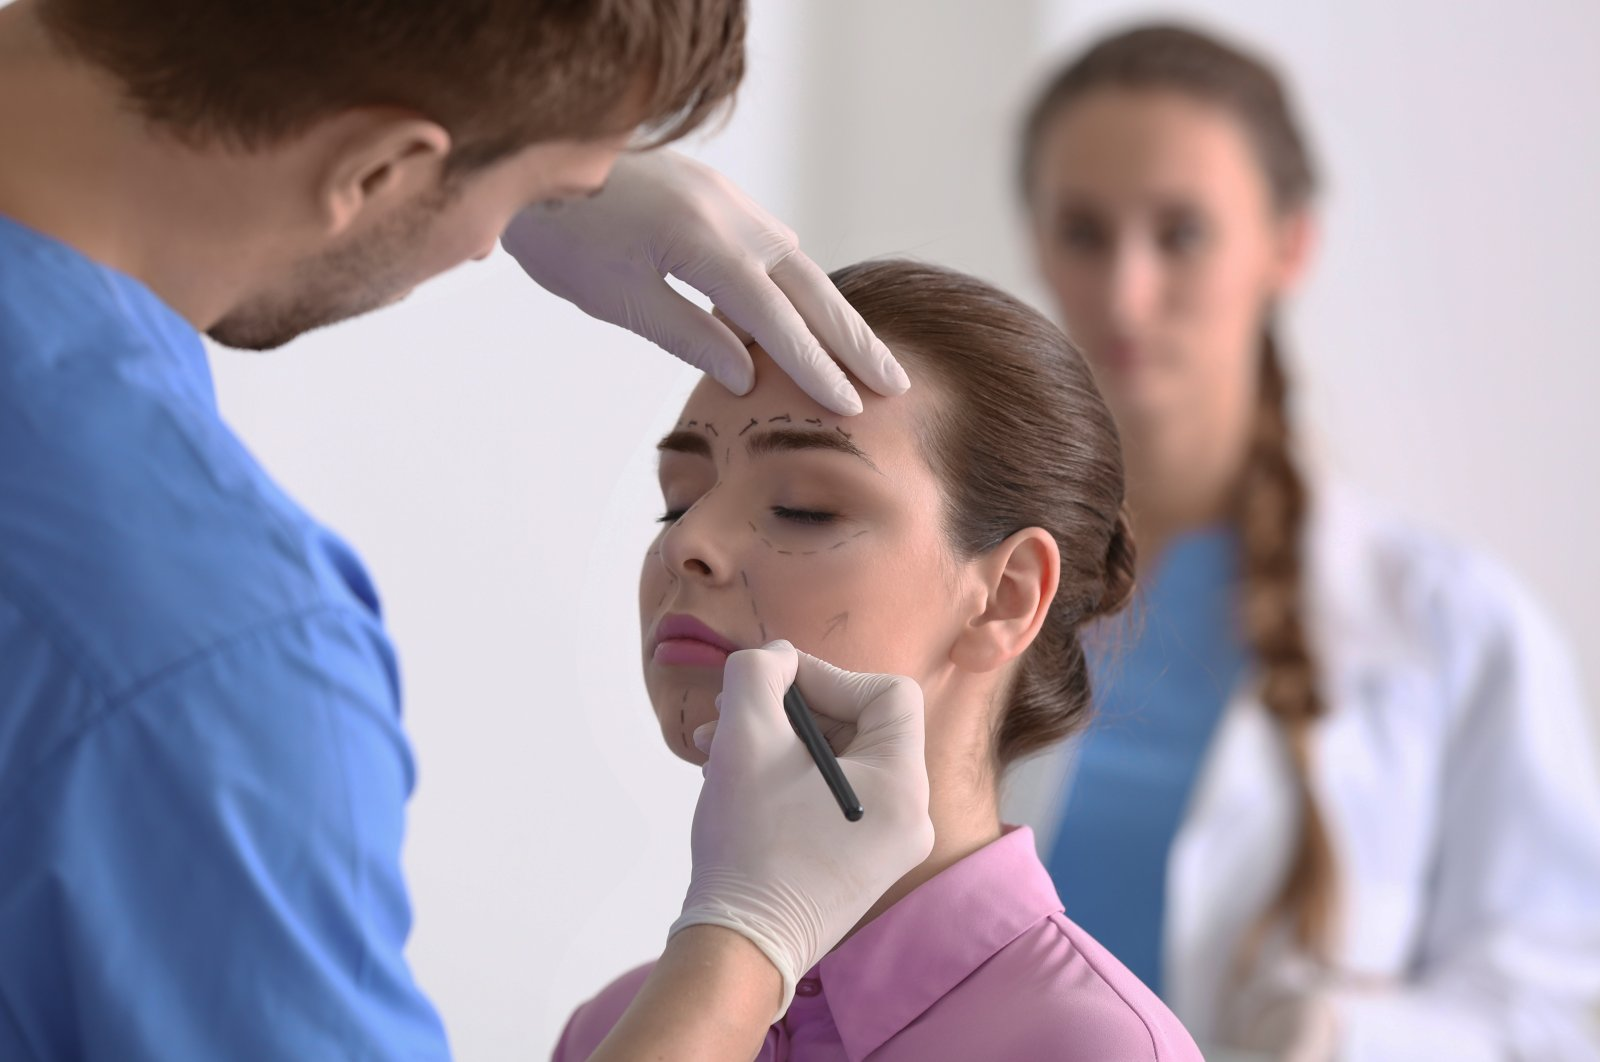 Plastic surgery has seen a rise in younger populations in Turkey. (Shutterstuck Photo)